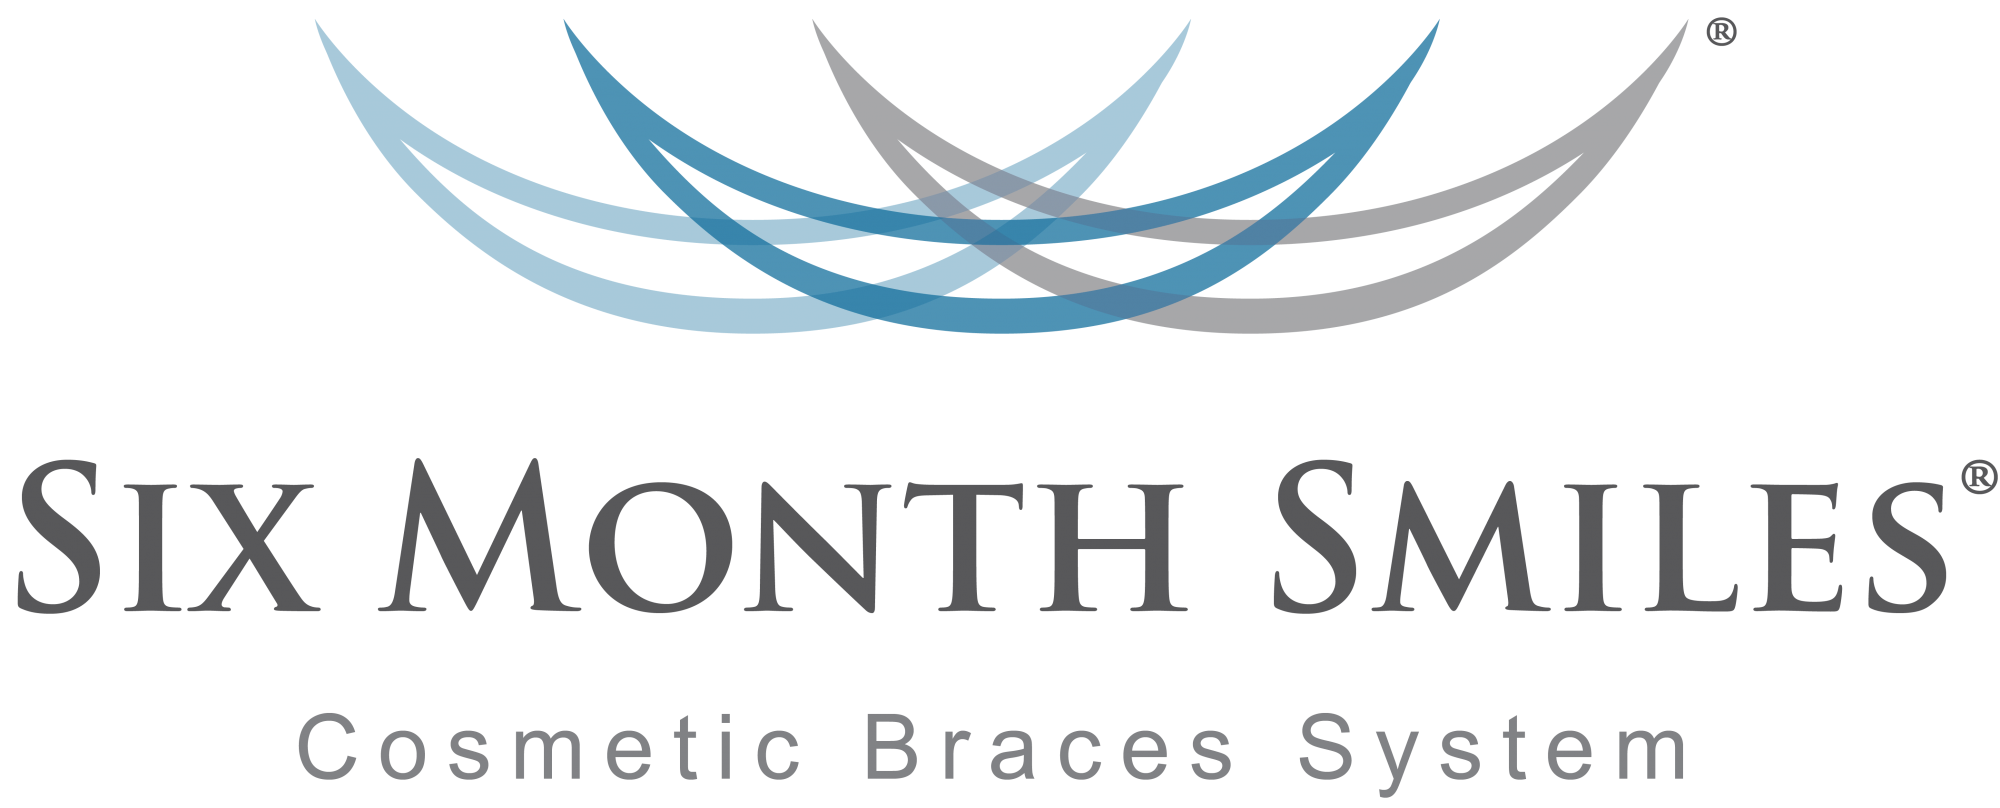 Six Month Smiles Logo Transparent